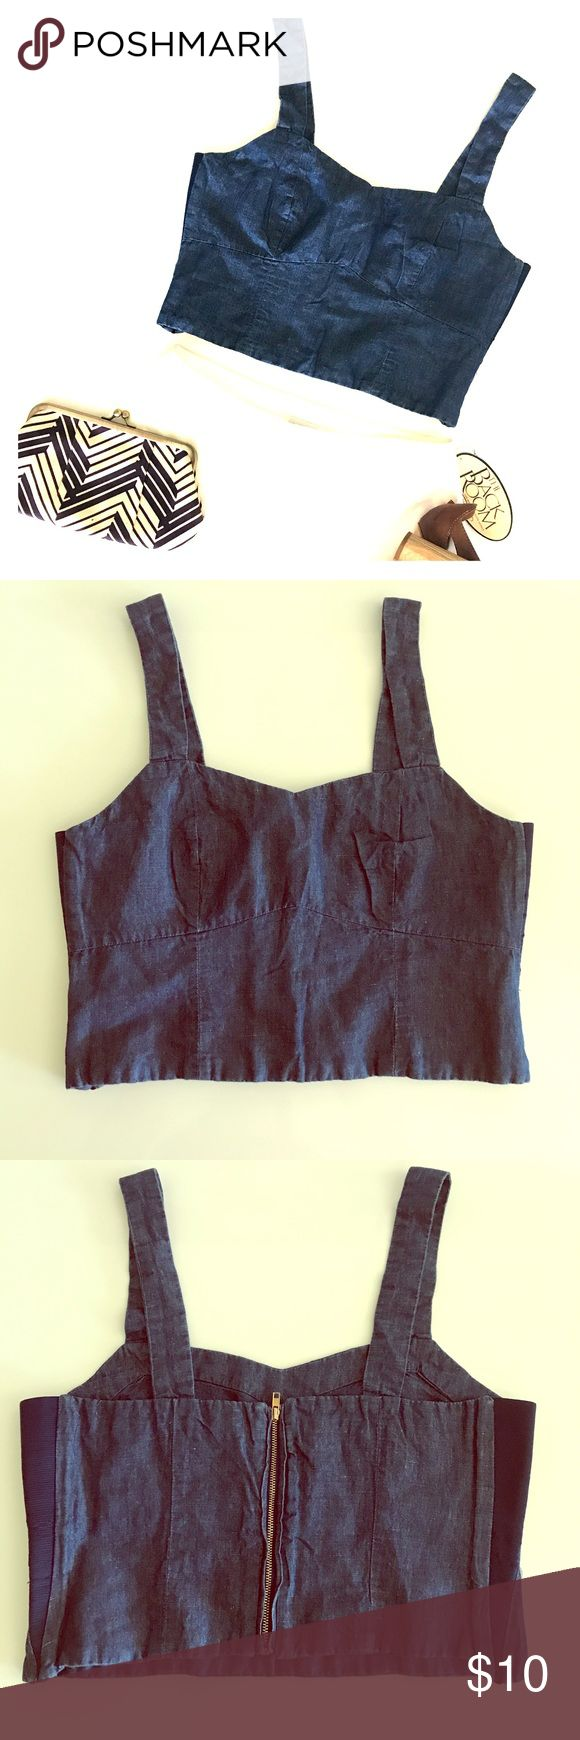 Zara Jean Cropped Top, Size Medium Zara Jean cropped top, size M, super cute on! Elastic sides for extra comfort 😊Wear it with jeans, shorts, Maxi skirt, anything!!! Gently worn, great condition. Zara Tops Crop Tops